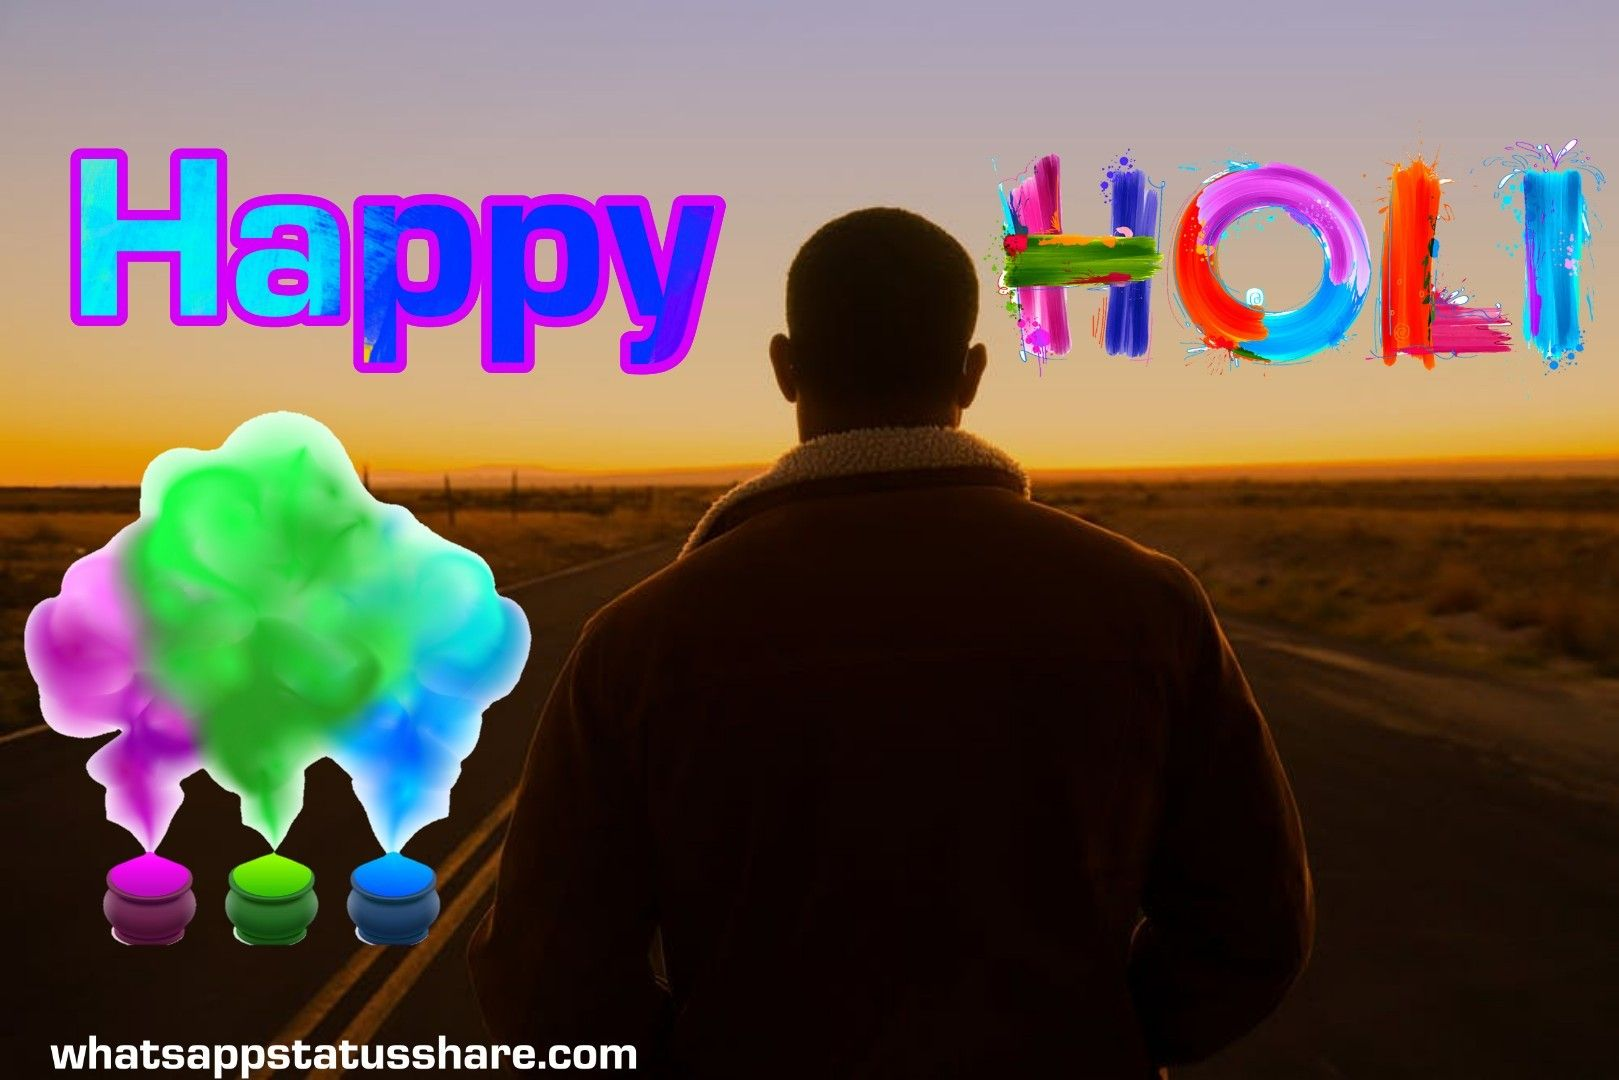 Happy holi images wallpapers Happy holi images Holi images 1619x1080